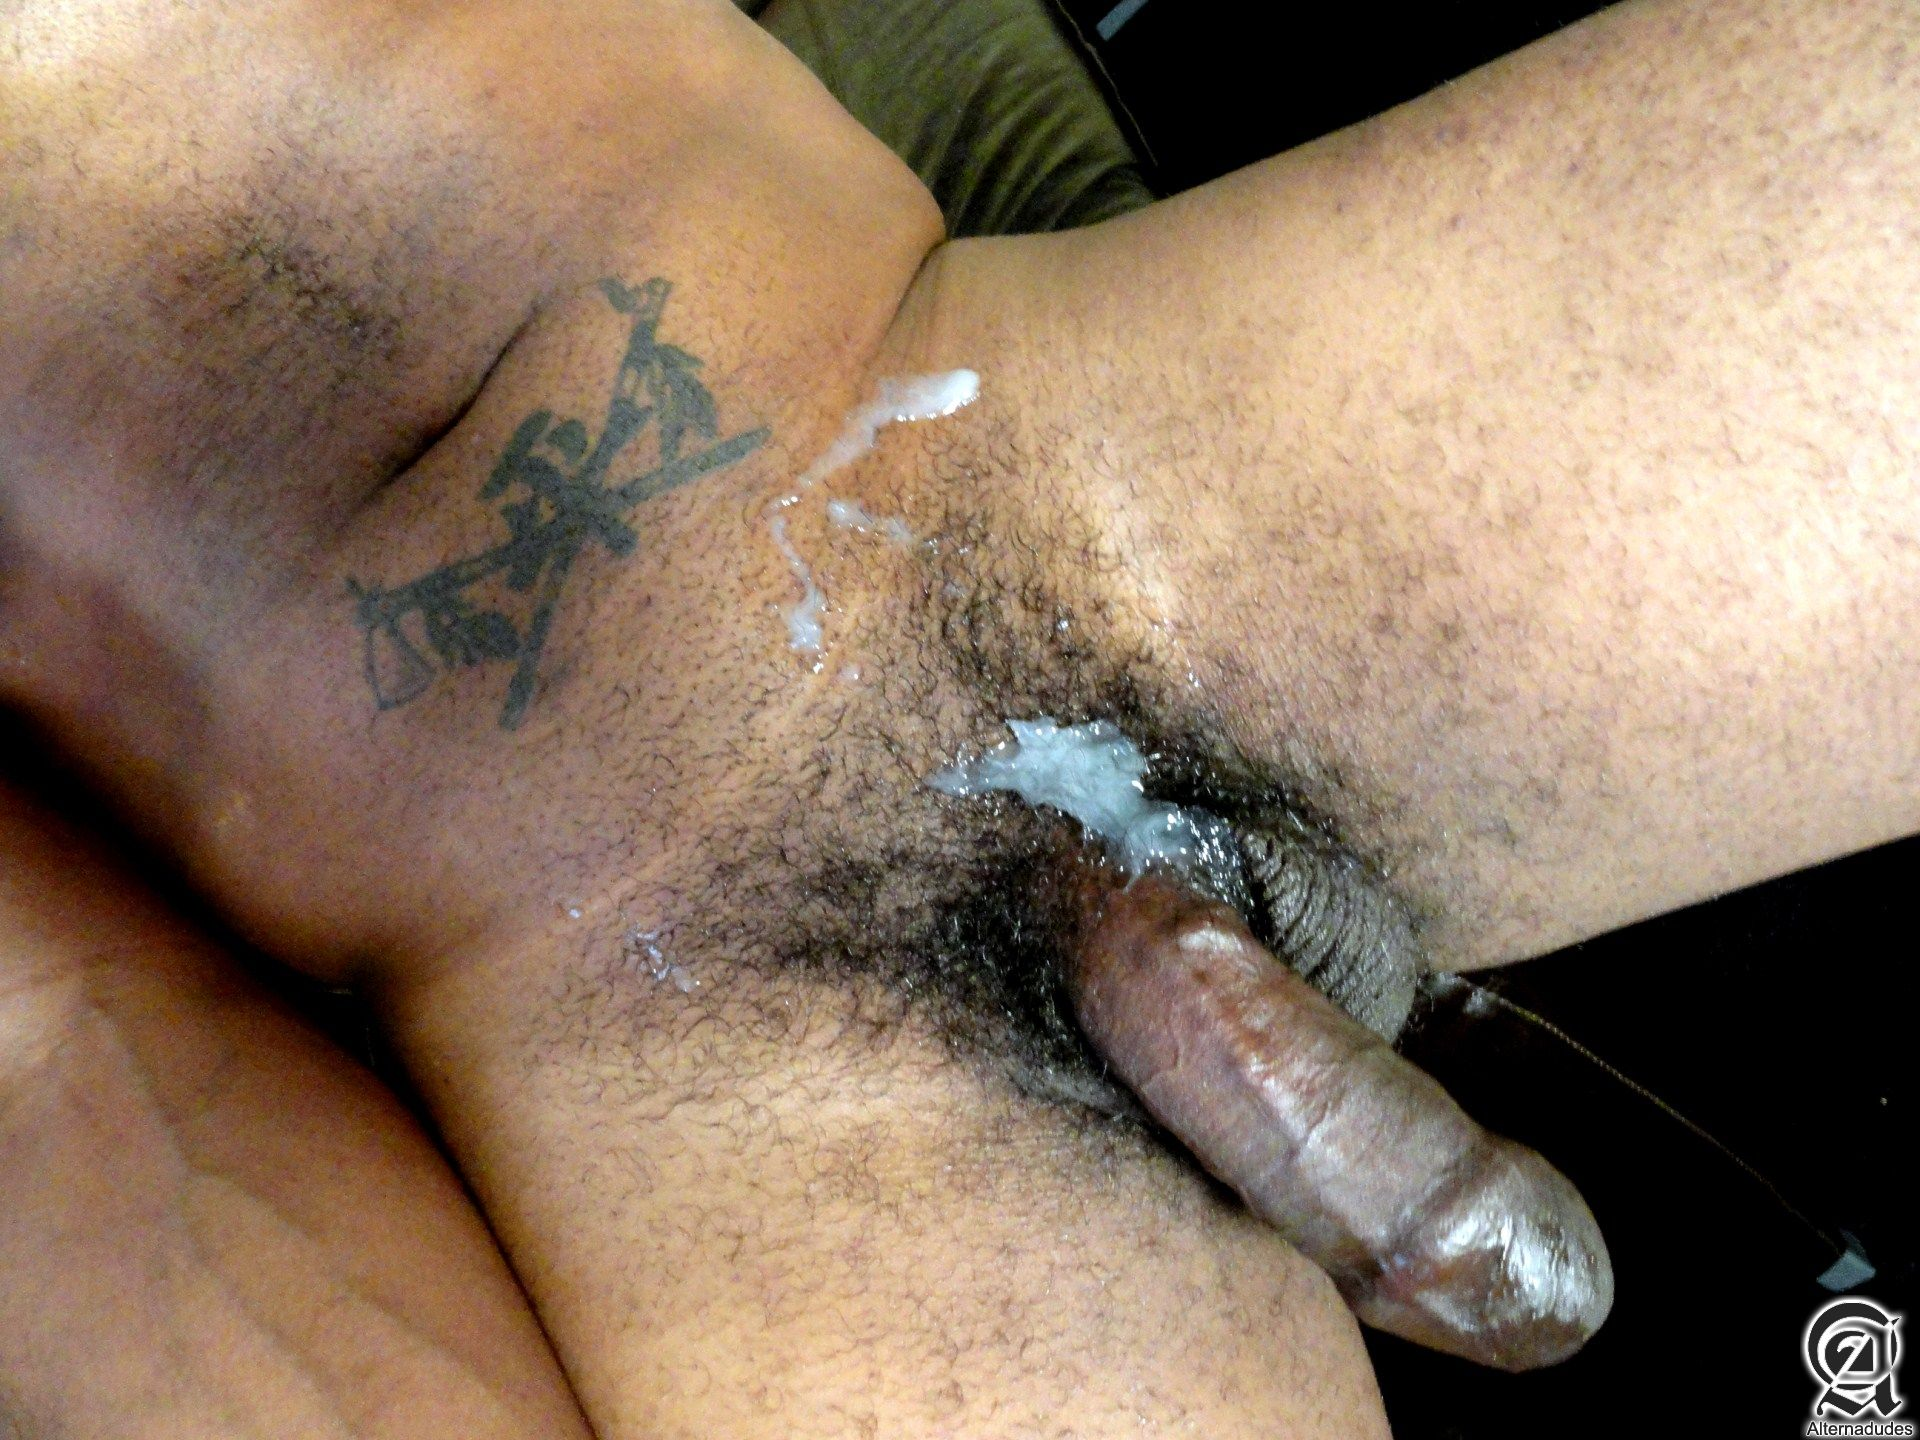 Alternadudes Kamrun big black uncut cock with cum 13 Sexy Amateur Black Hipster with a Huge Uncut Black Cock Shoots A Load